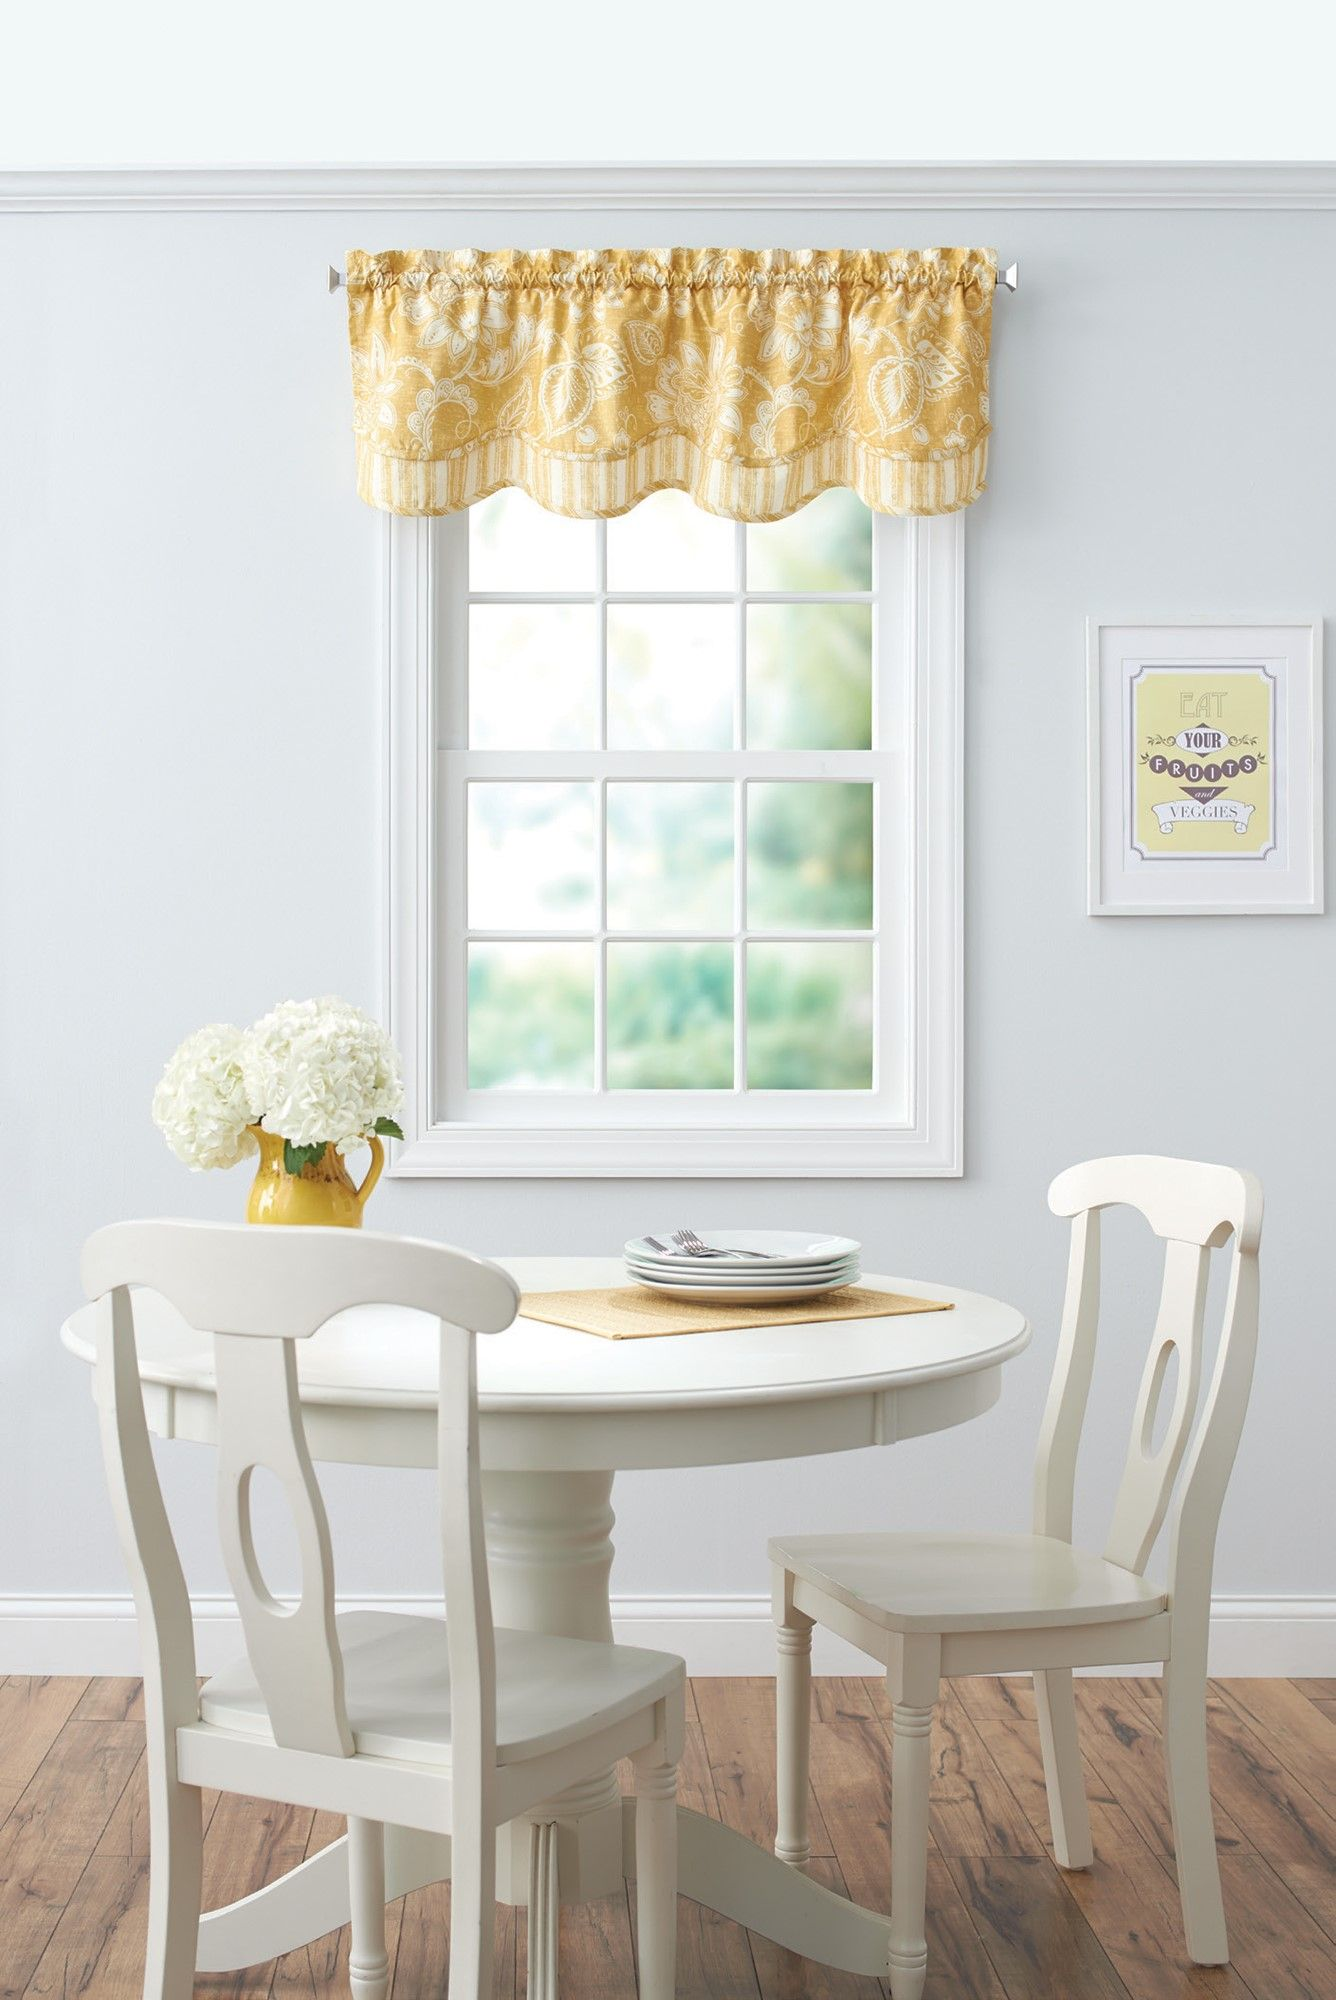 951f6cf57a787375abadeb6d8caca8c1 - Better Homes And Gardens Cafe Kitchen Curtain Set